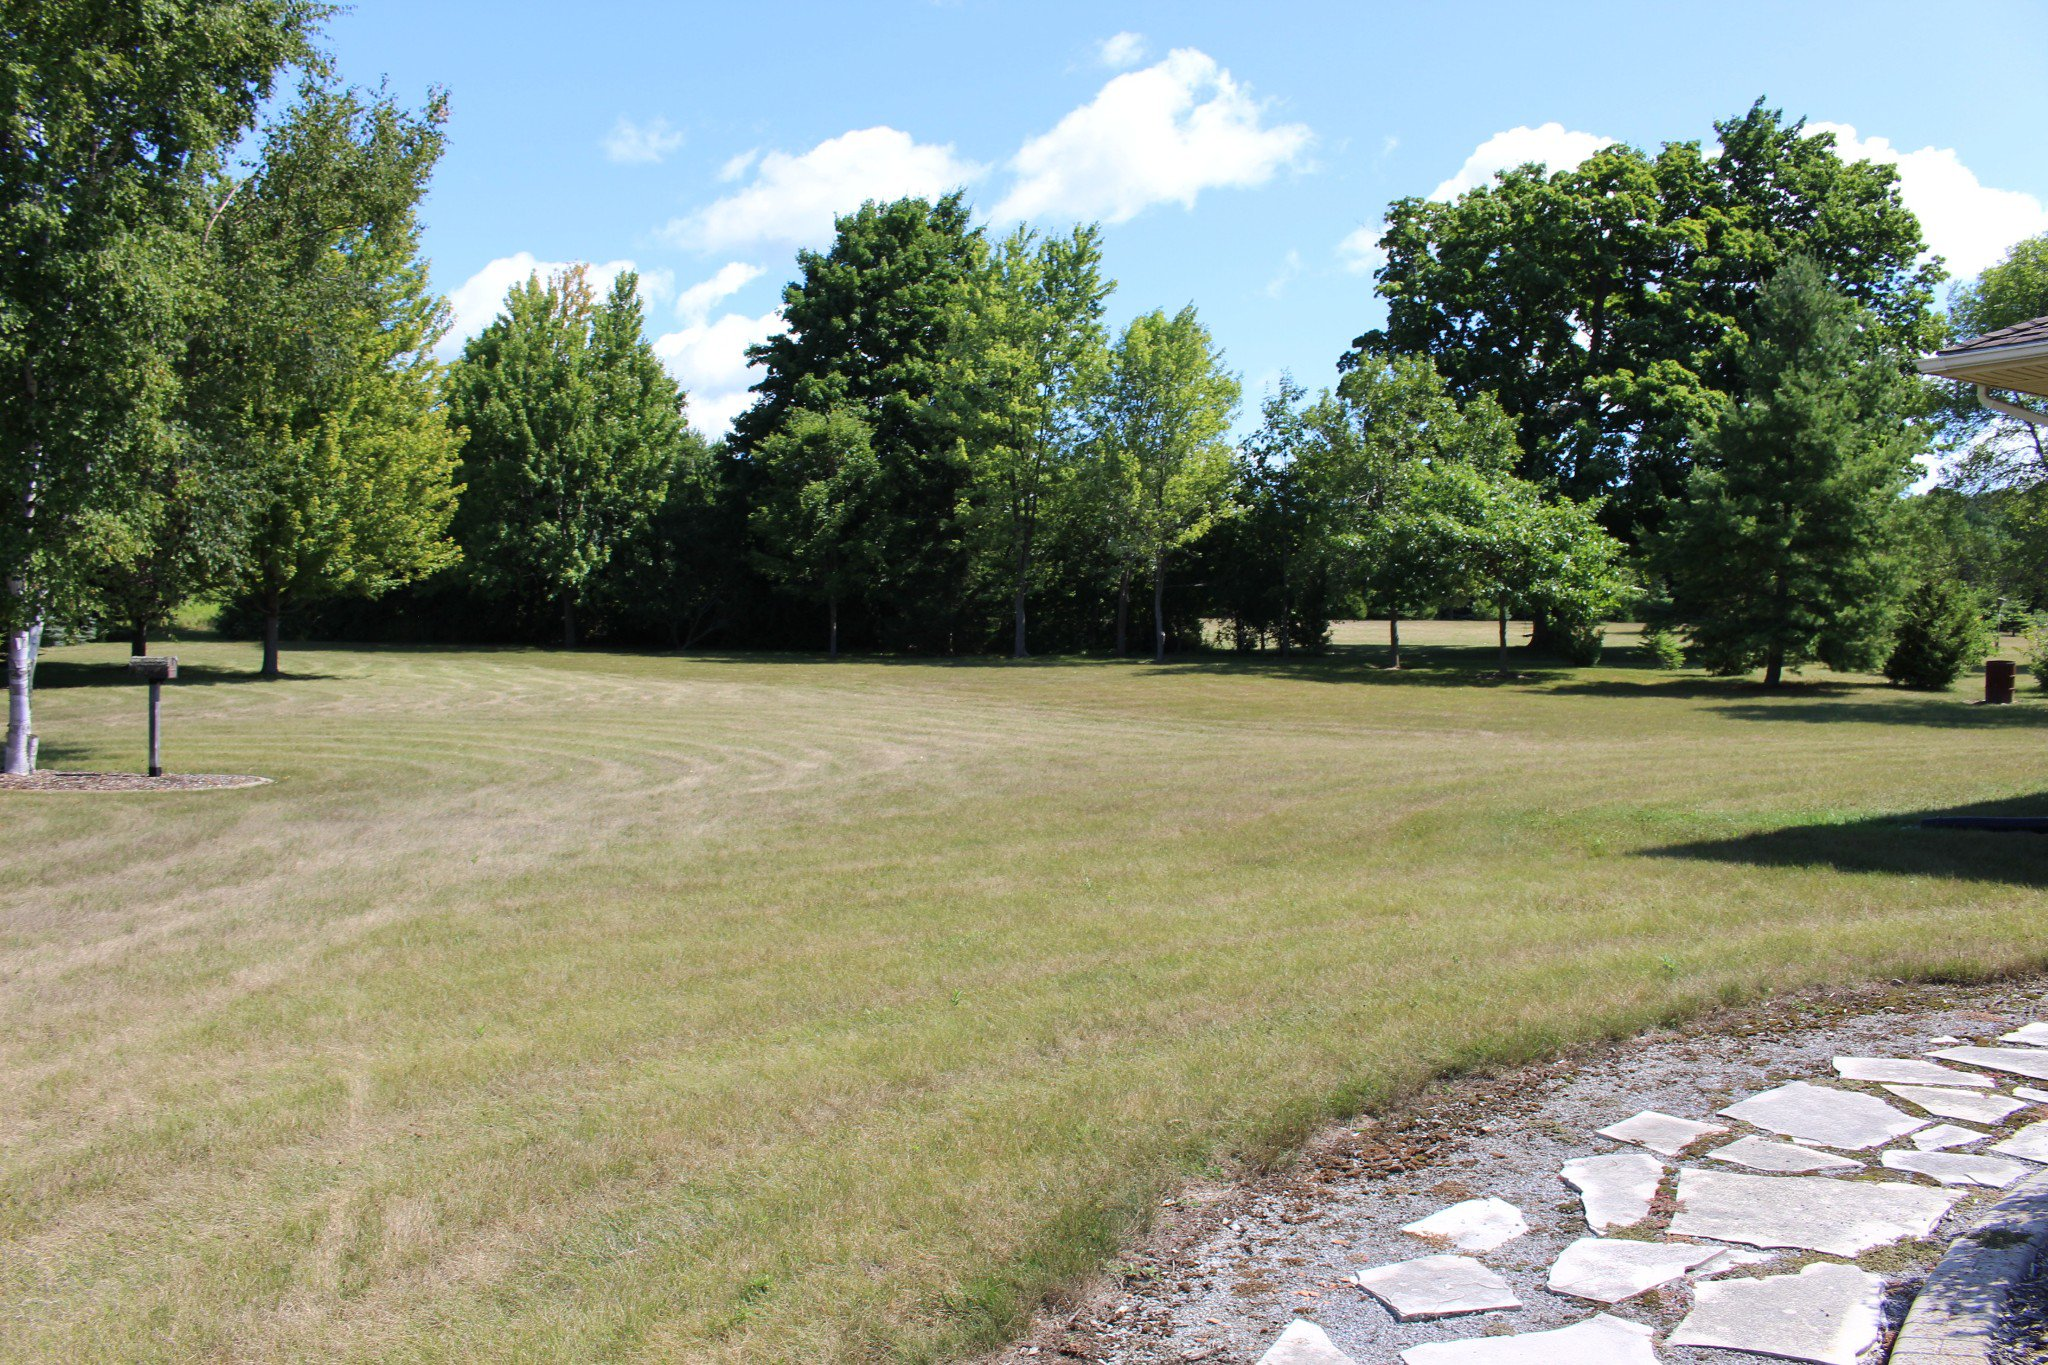 Photo 42: Photos: 159 Nawautin Drive in Grafton: Residential Detached for sale : MLS®# 40012652